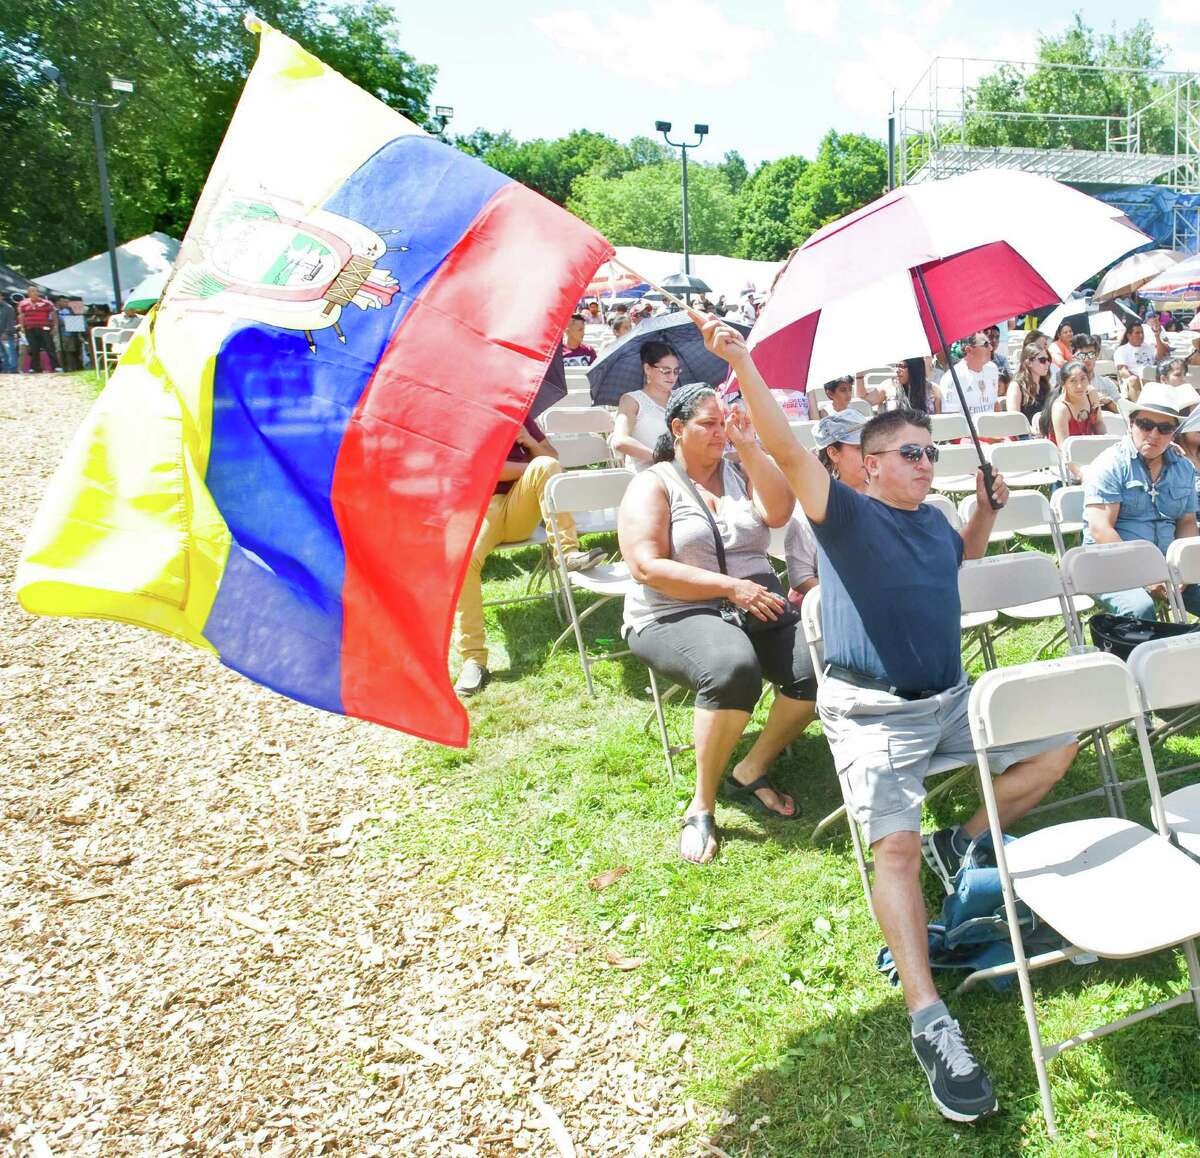 Angel Capon waves the flag of Ecuador at the annual Ecuadorian festival held at the Ives Concert Park in Danbury. Sunday, Aug. 9, 2015